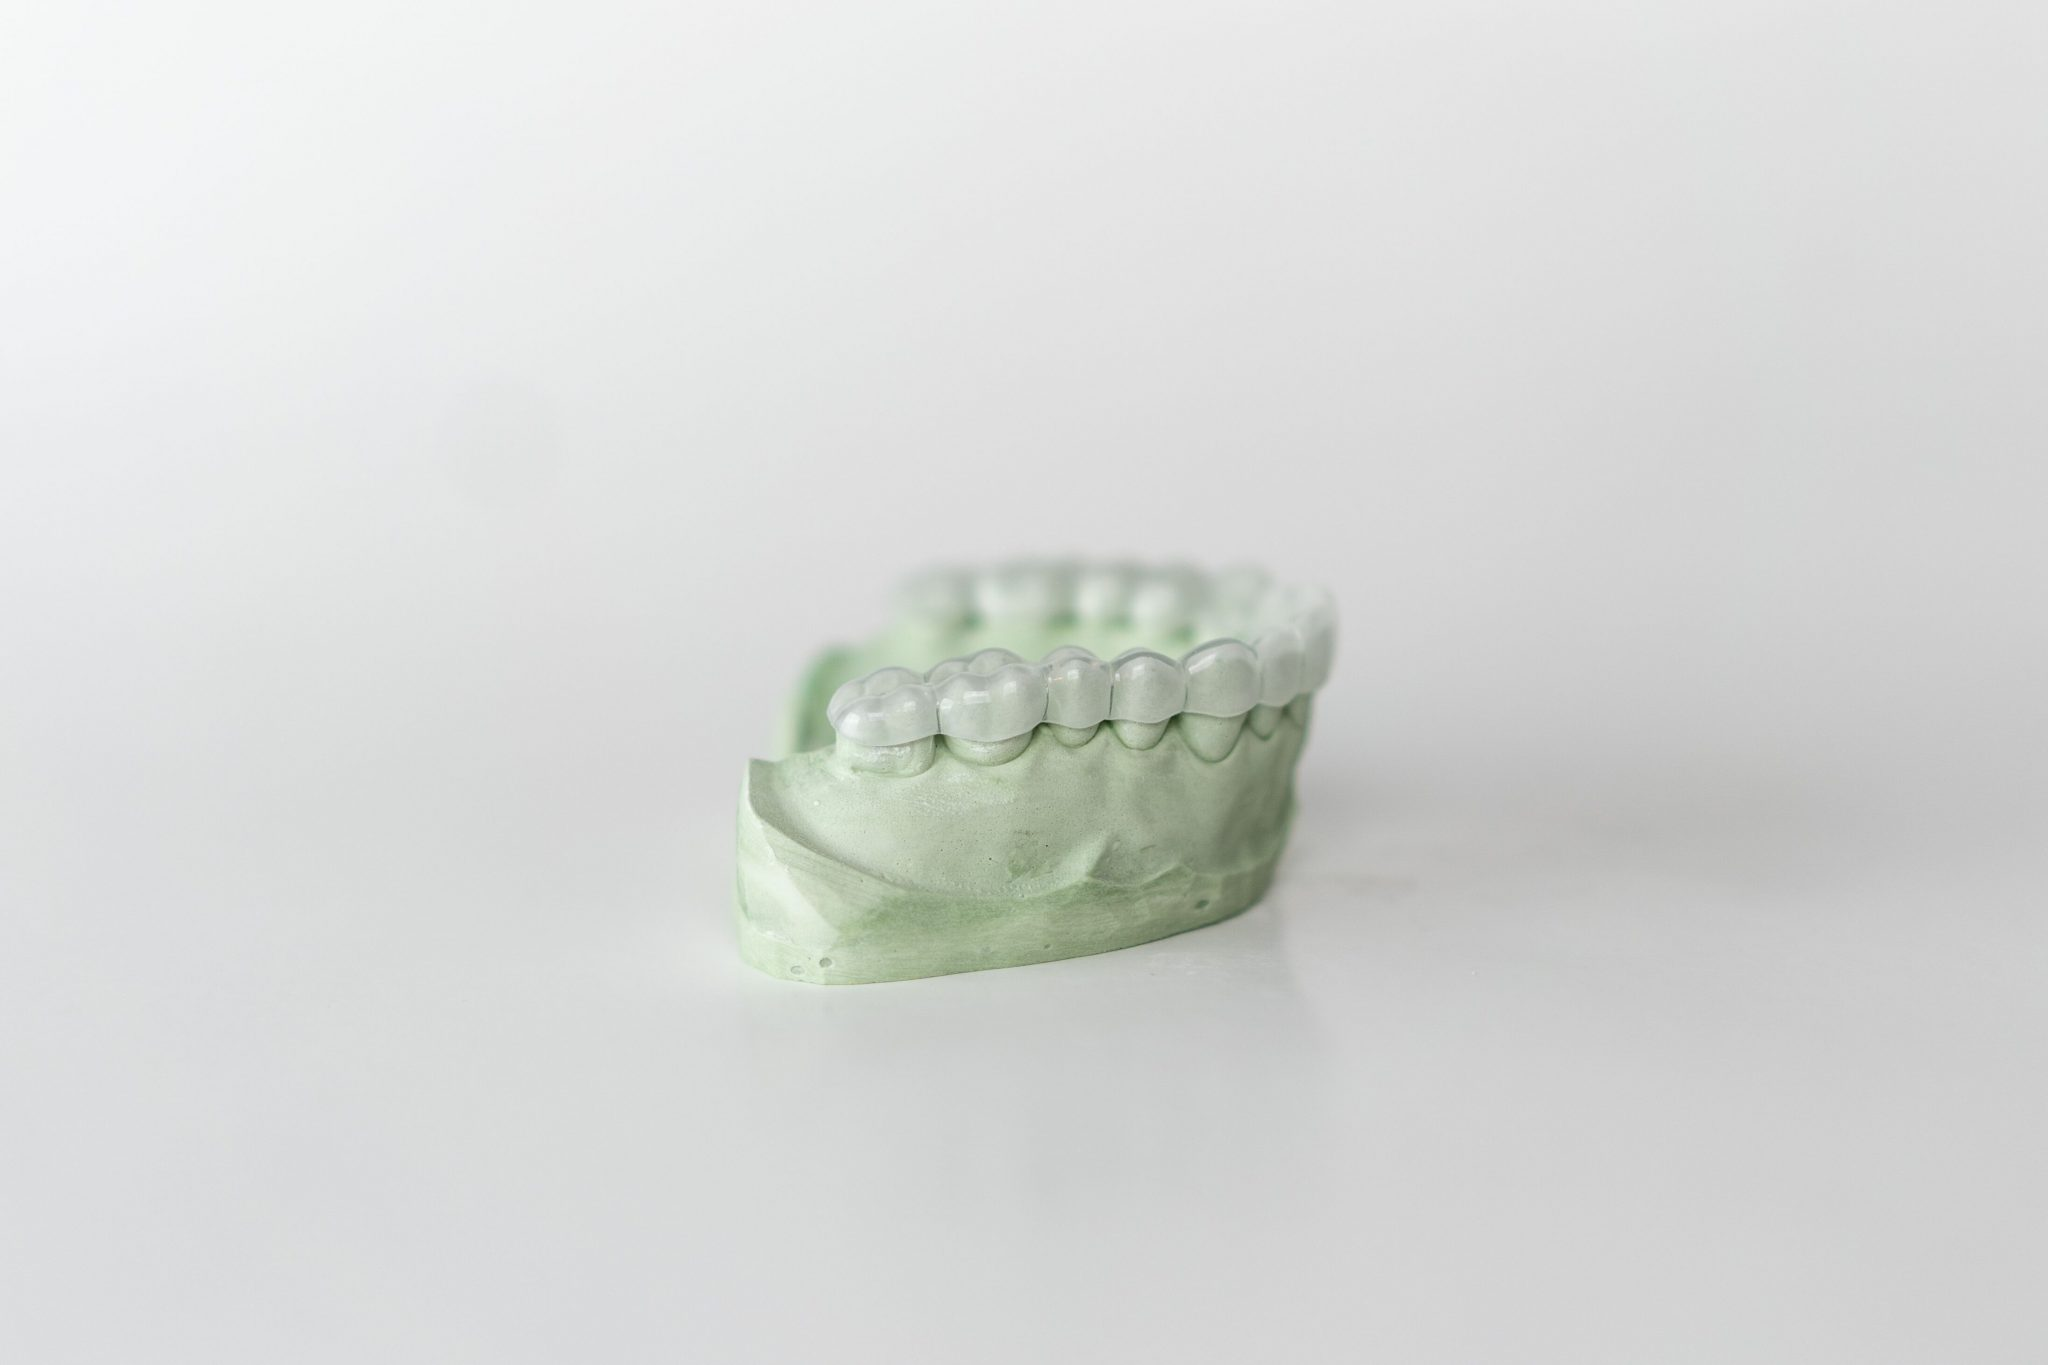 sentinel soft dental night guard side view 4